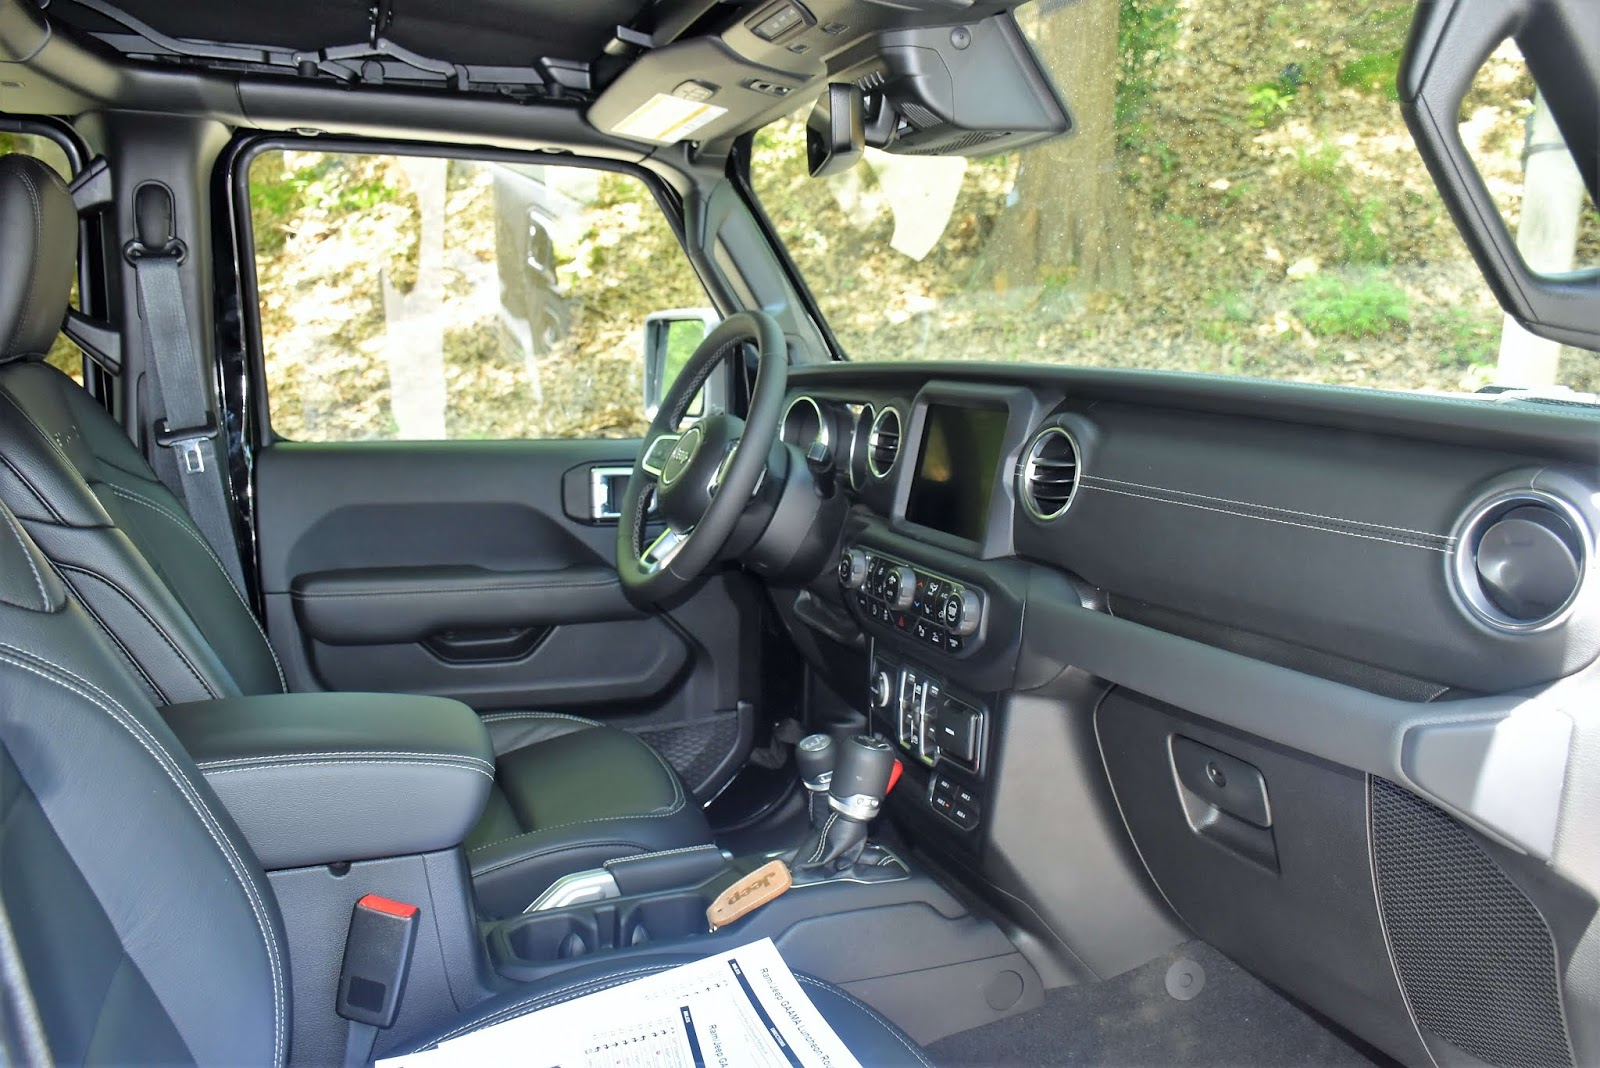 2020 Jeep Gladiator Truck Interior Black